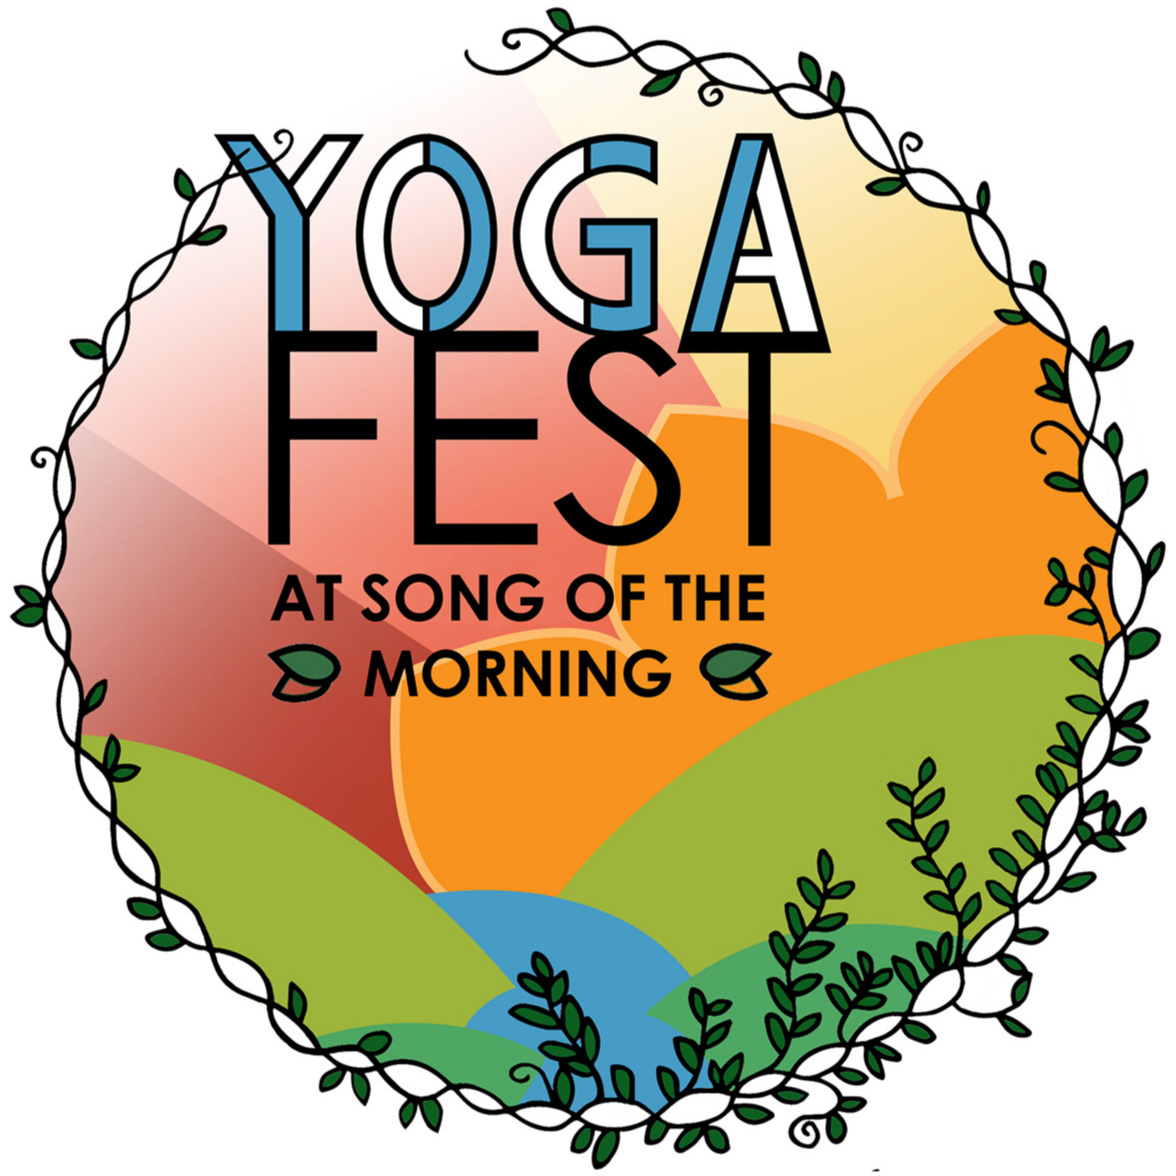 YogaFest at Song of the Morning